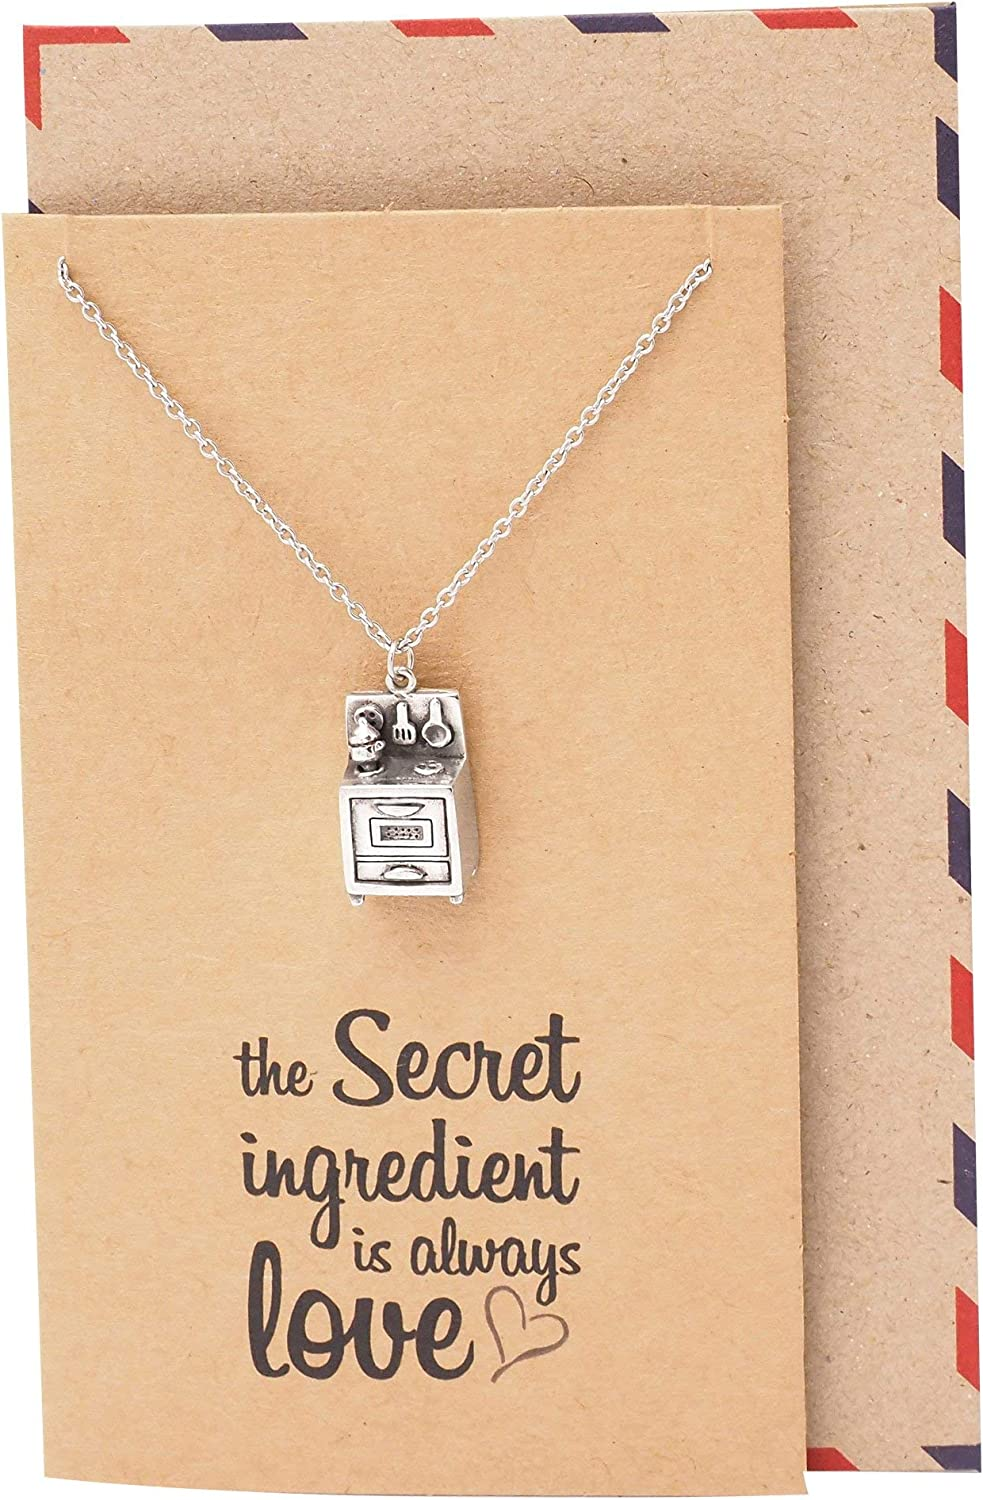 Quan Jewelry Kitchen Chef Necklace, Secret Ingredient is Love Quote Card, Gifts for Master Chef Baker Cook, Baker's Accessory, Culinary Gifts for Men & Women - 100% Handmade